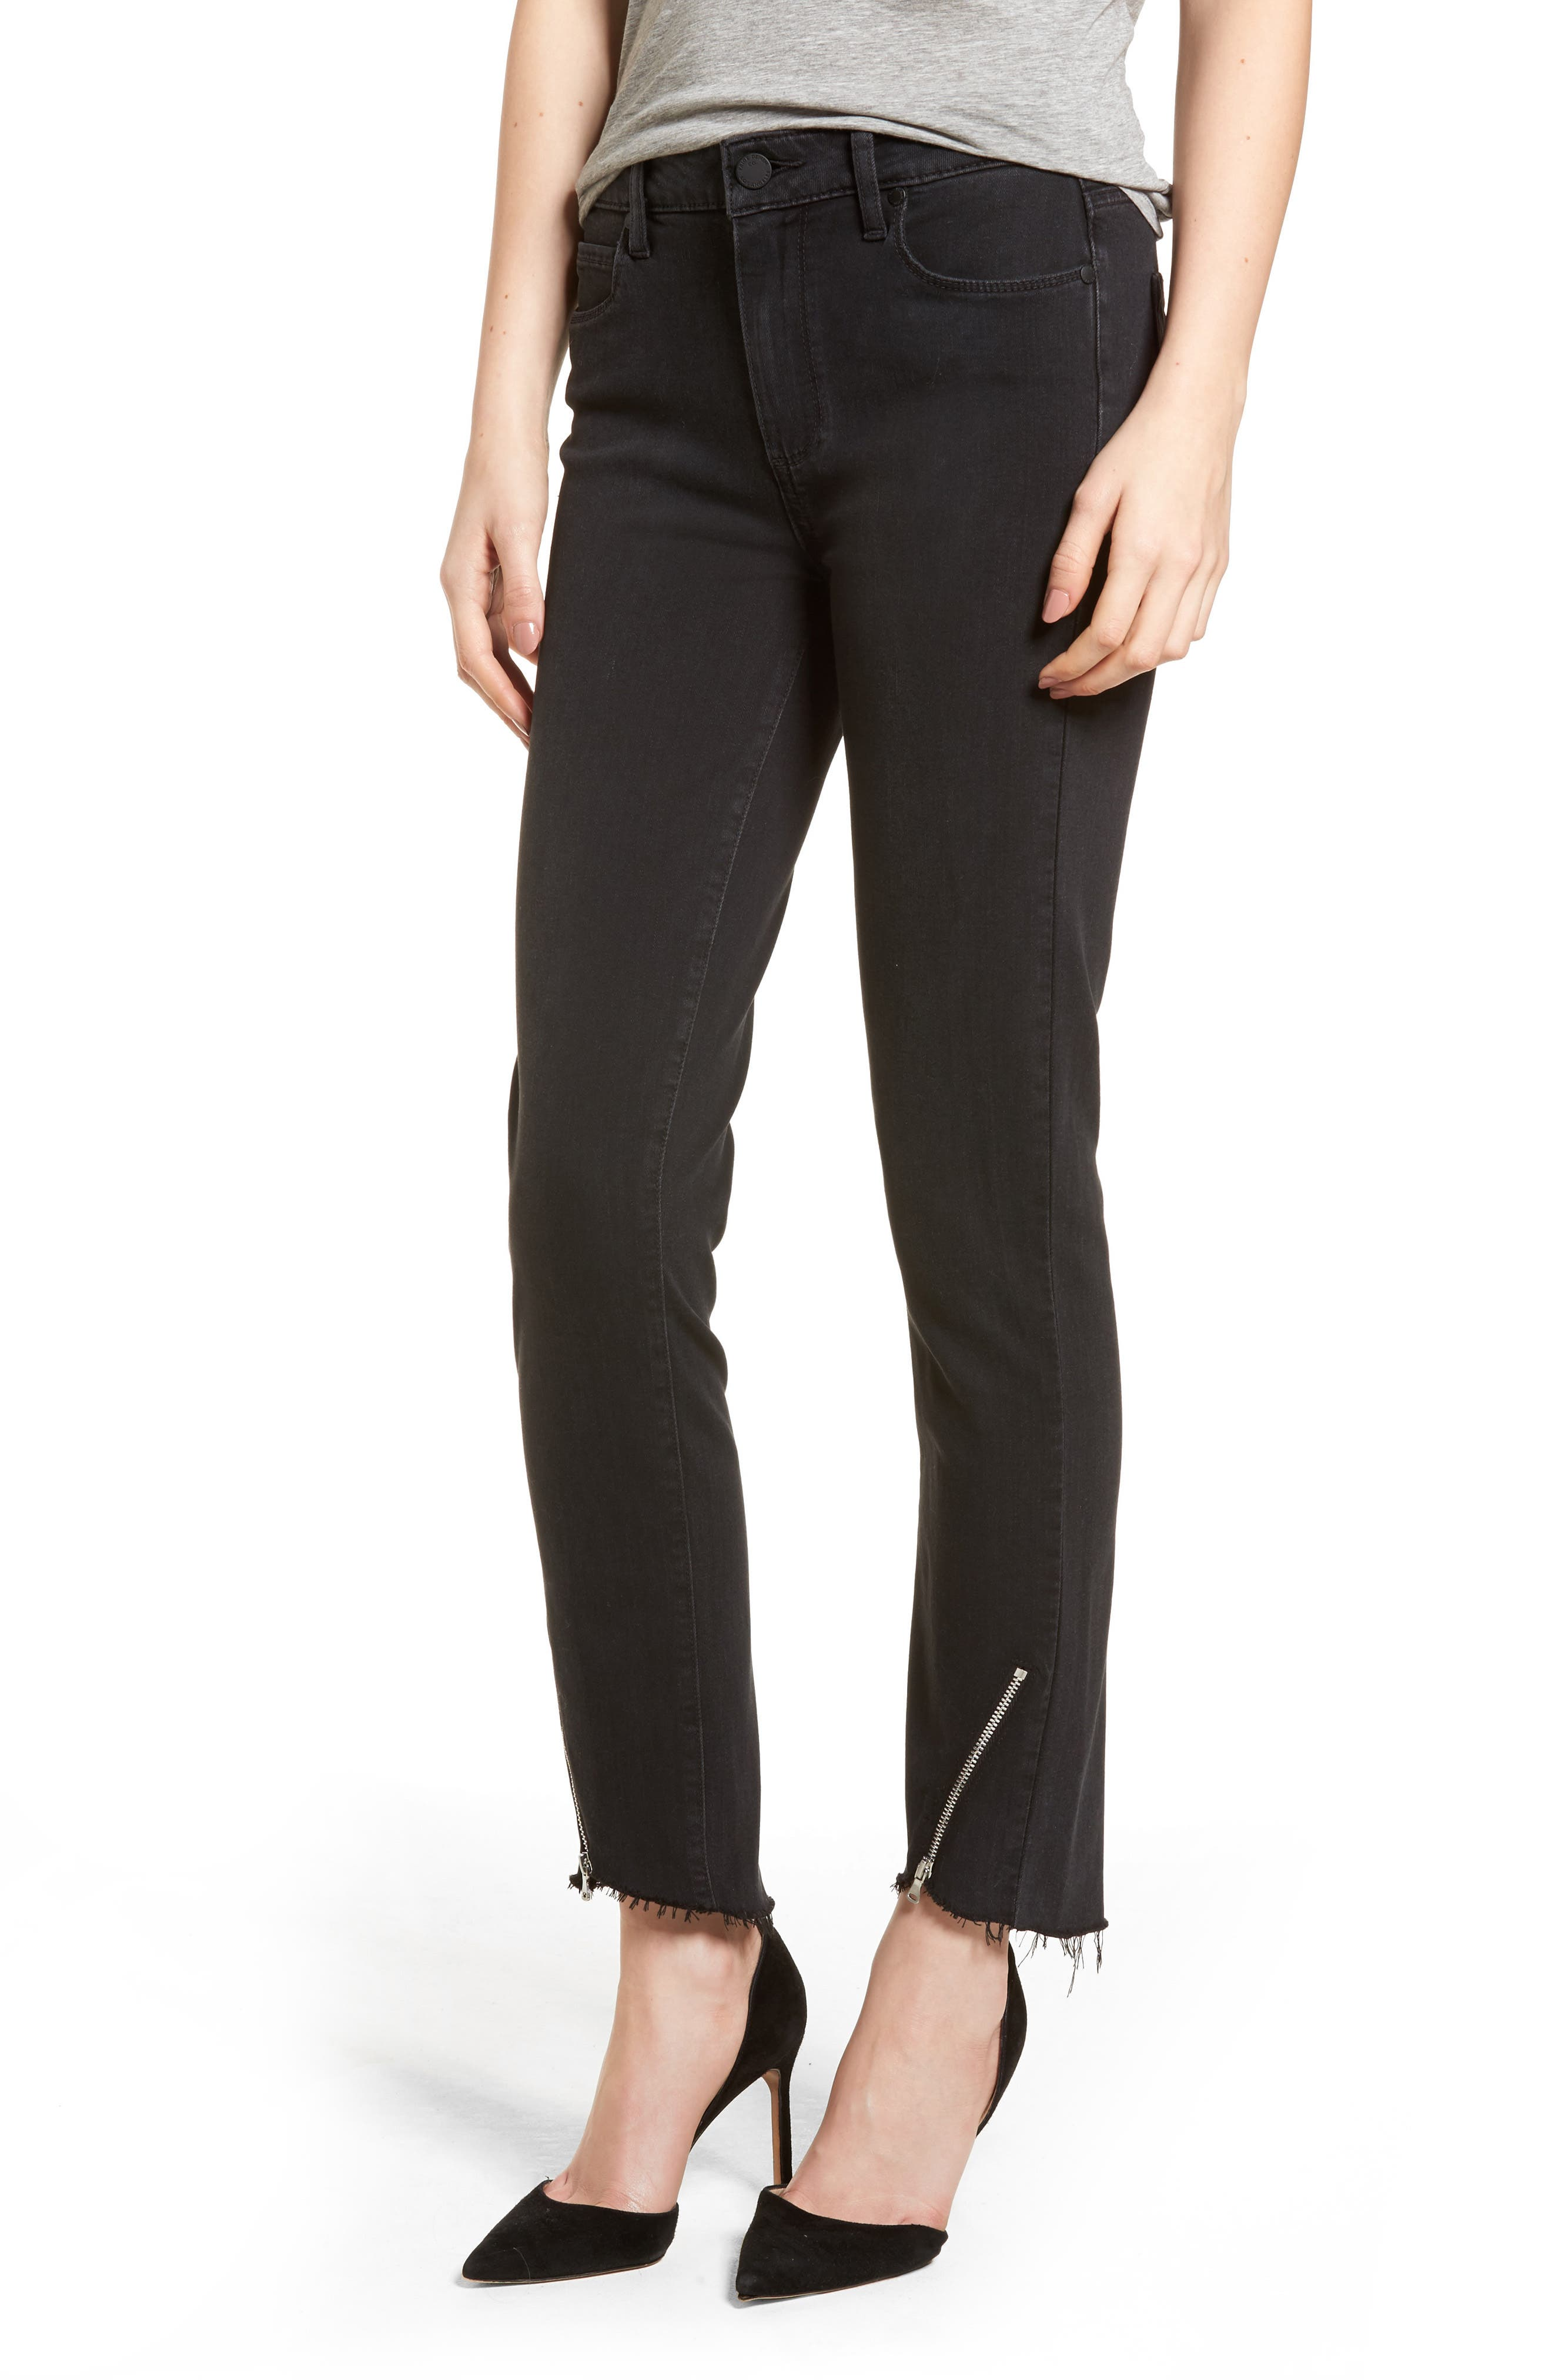 Transcend - Hoxton High Waist Ultra Skinny Jeans,                         Main,                         color, 001